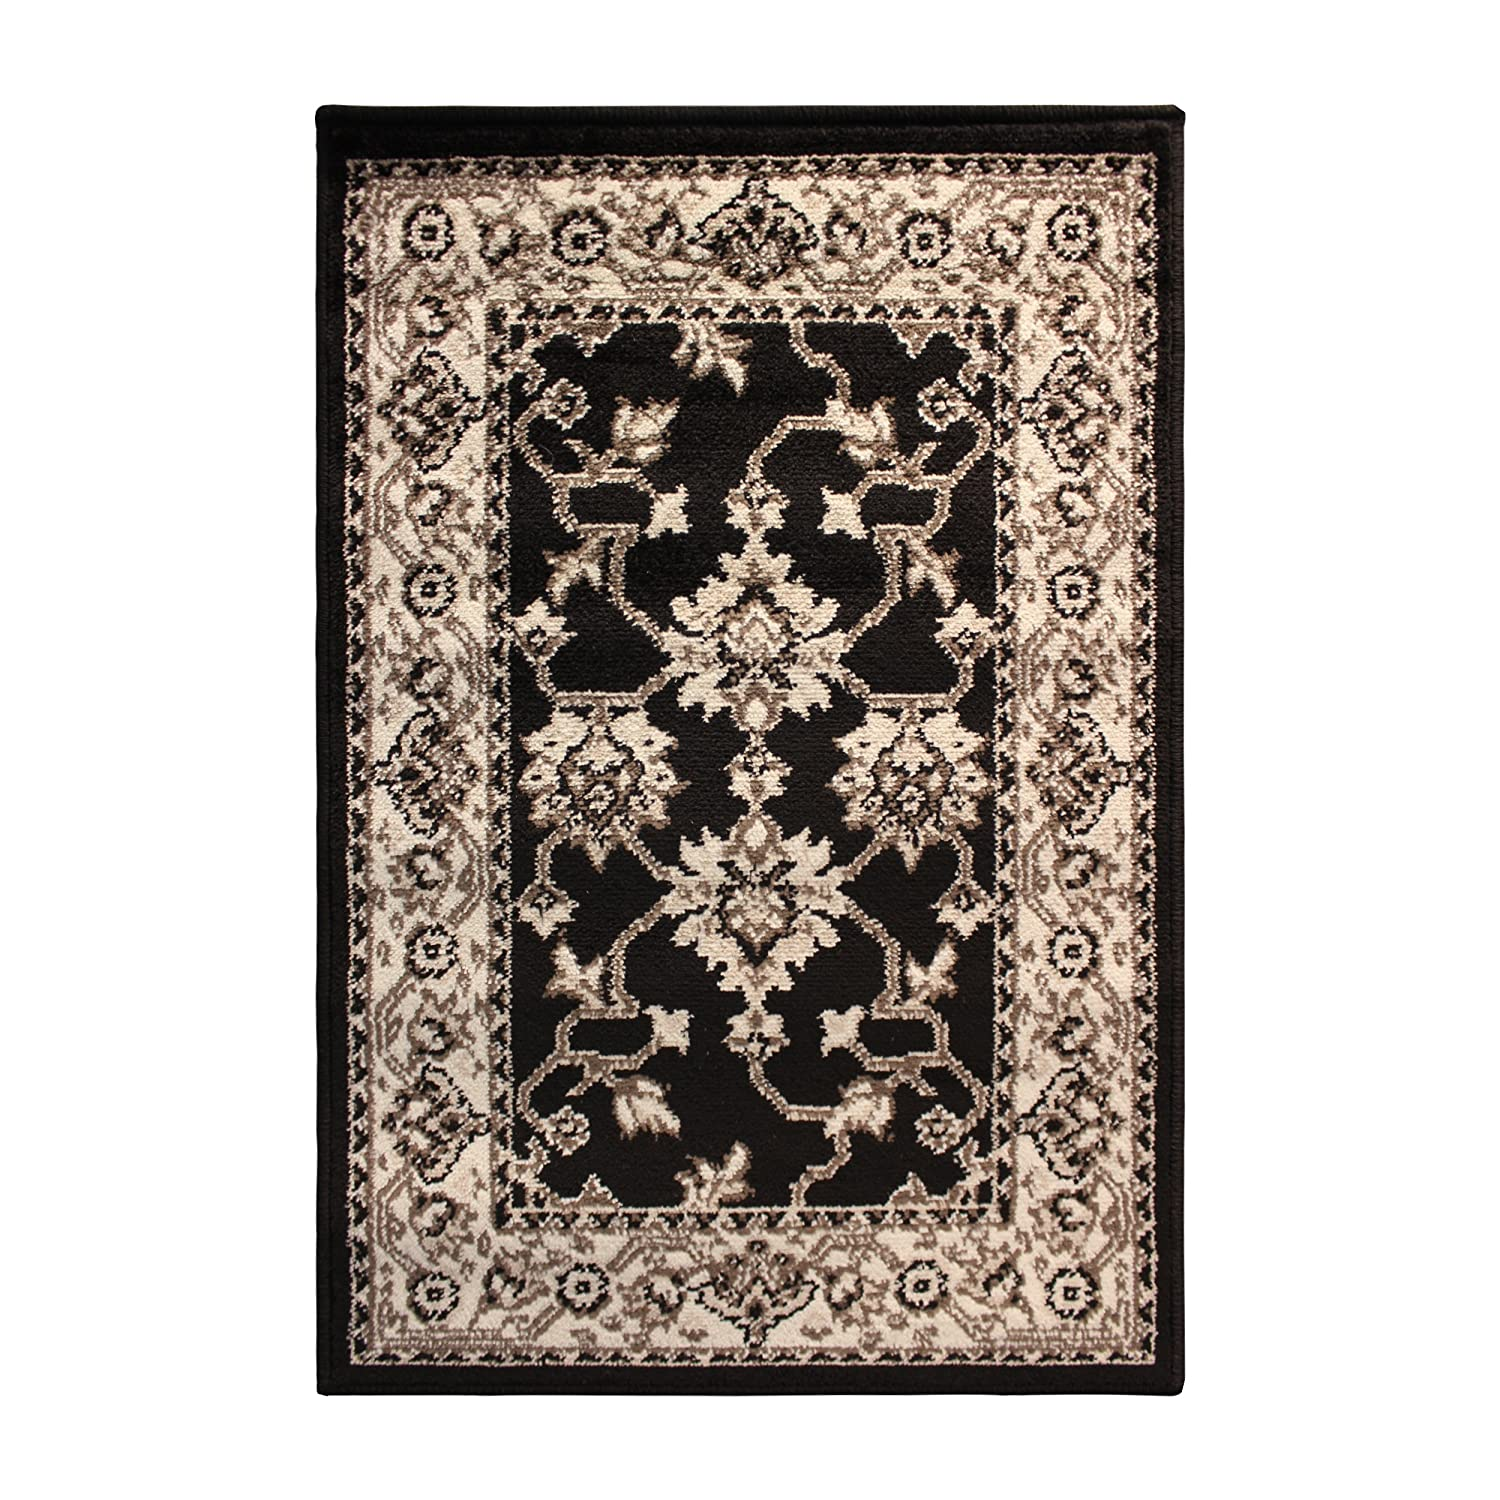 Superior Elegant Kingfield Collection Area Rug, 8mm Pile Height with Jute Backing, Classic Bordered Rug Design, Anti-Static, Water-Repellent Rugs - Black, 2' x 3' Rug 2' x 3' Rug 2X3RUG-KINGFIELD-BK